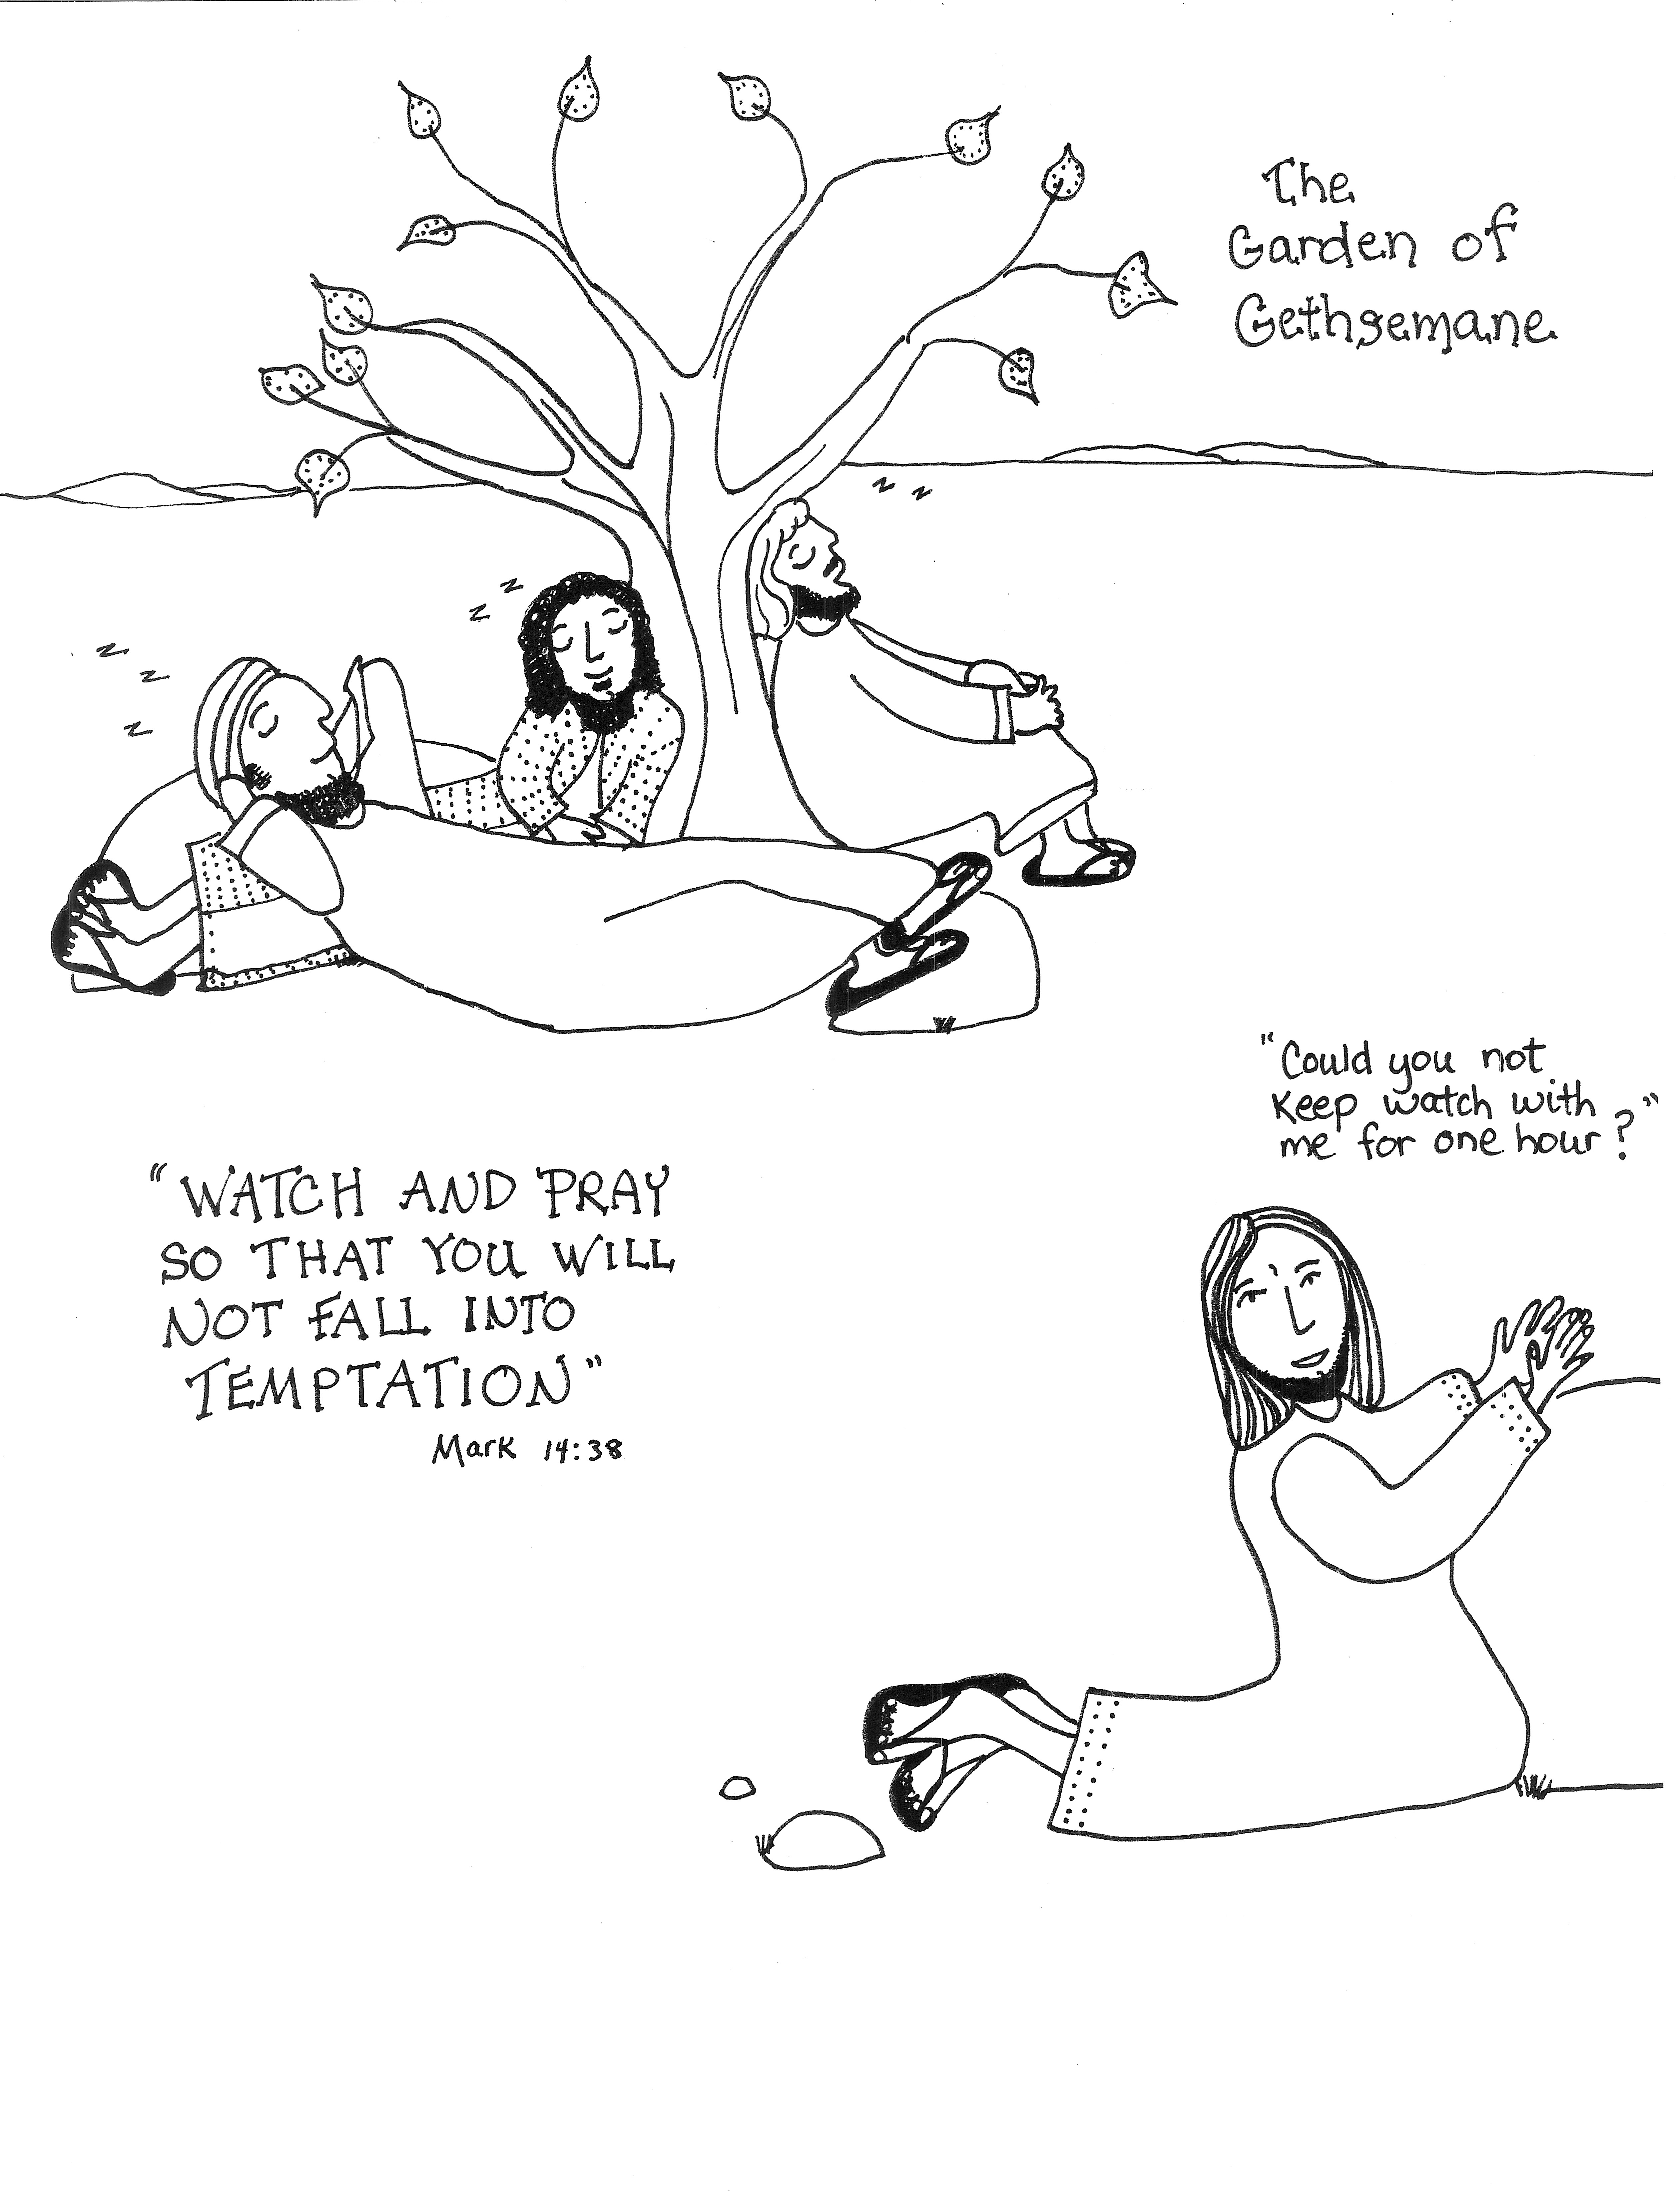 Gethsemane The Olive Press Aunties Bible Lessons Jesus In The Garden Of Gethsemane Coloring Page